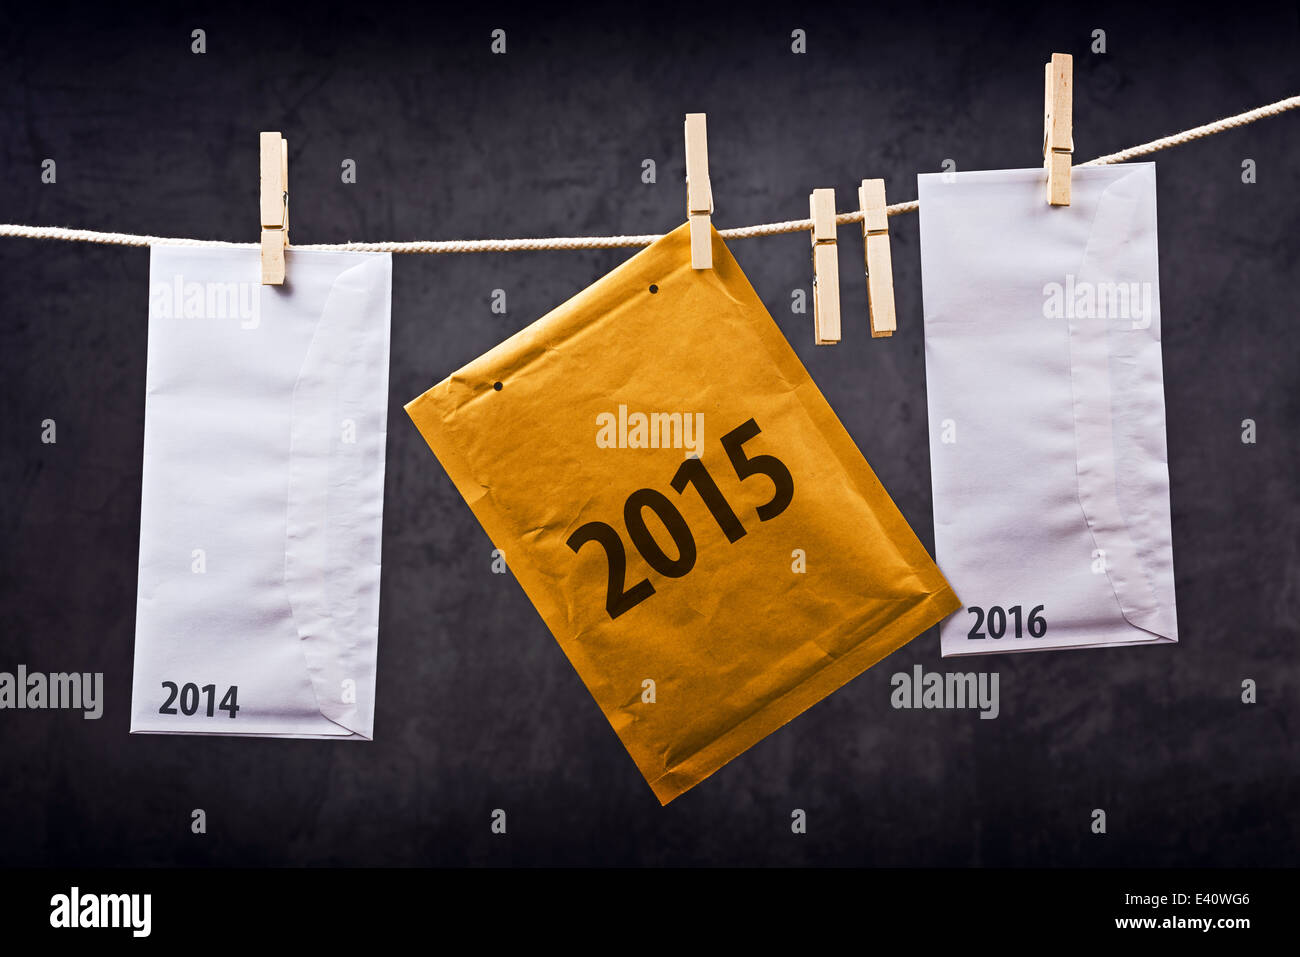 Three Postal mail Envelopes with year numbers 2014, 2015 and 2016 hanging on rope attached with clothes pins. - Stock Image